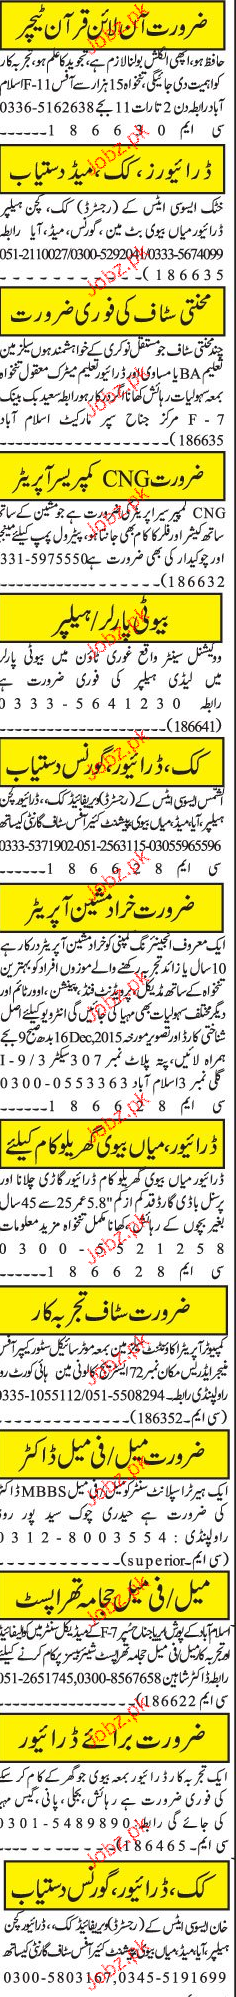 Drivers, CNG Operators, Lady Helpers Job Opportunity